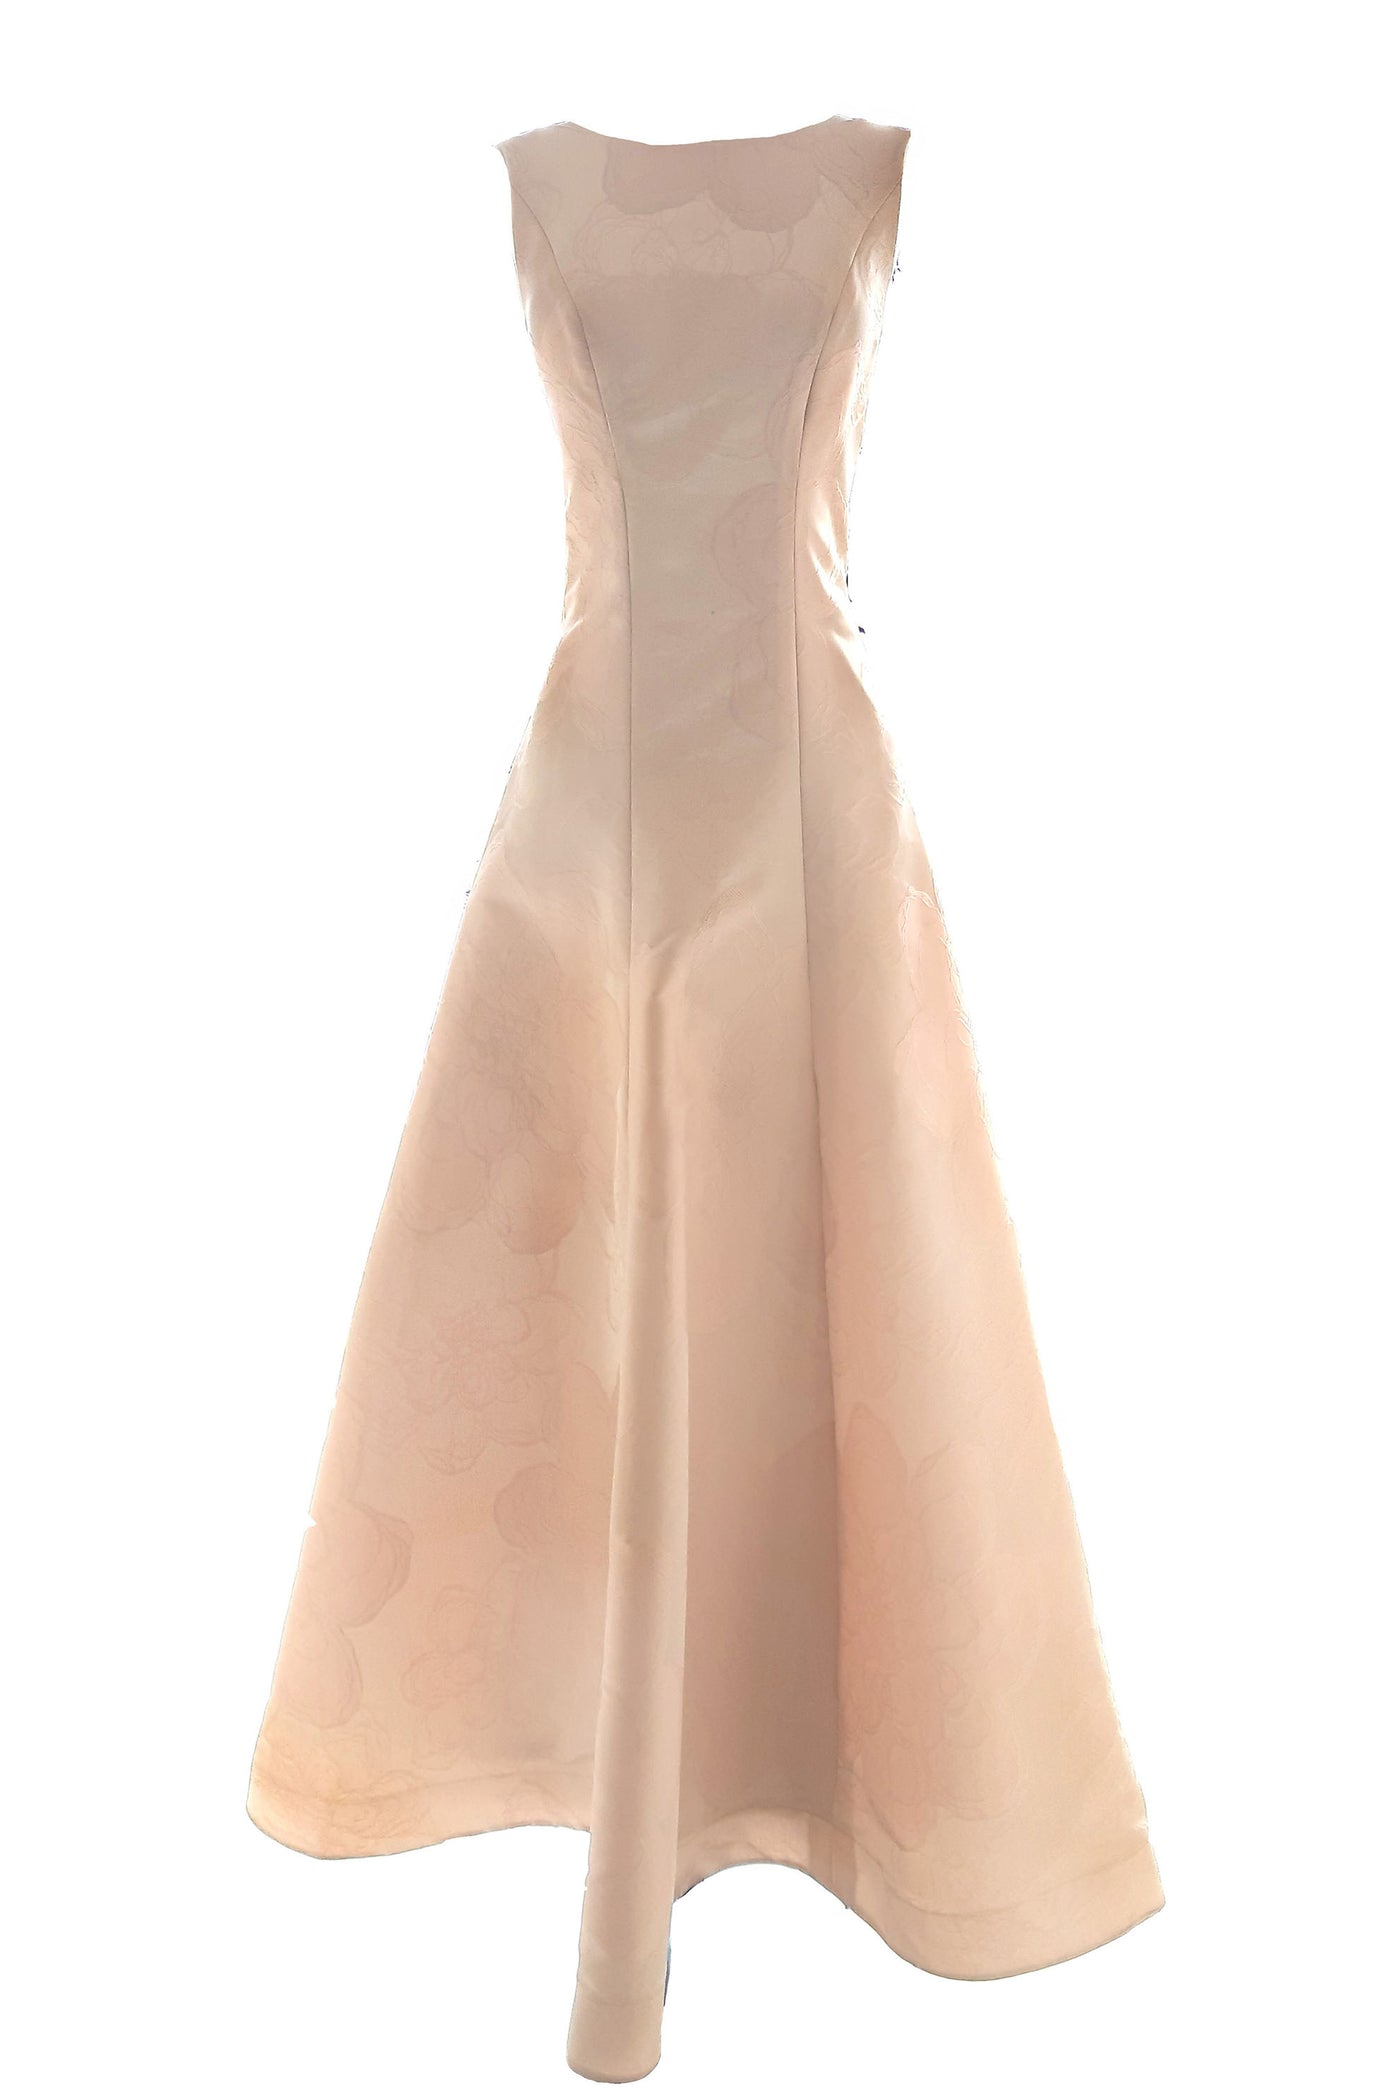 Rent: GAIA Sleeveless Embroidered Flower Powder Pink Dress